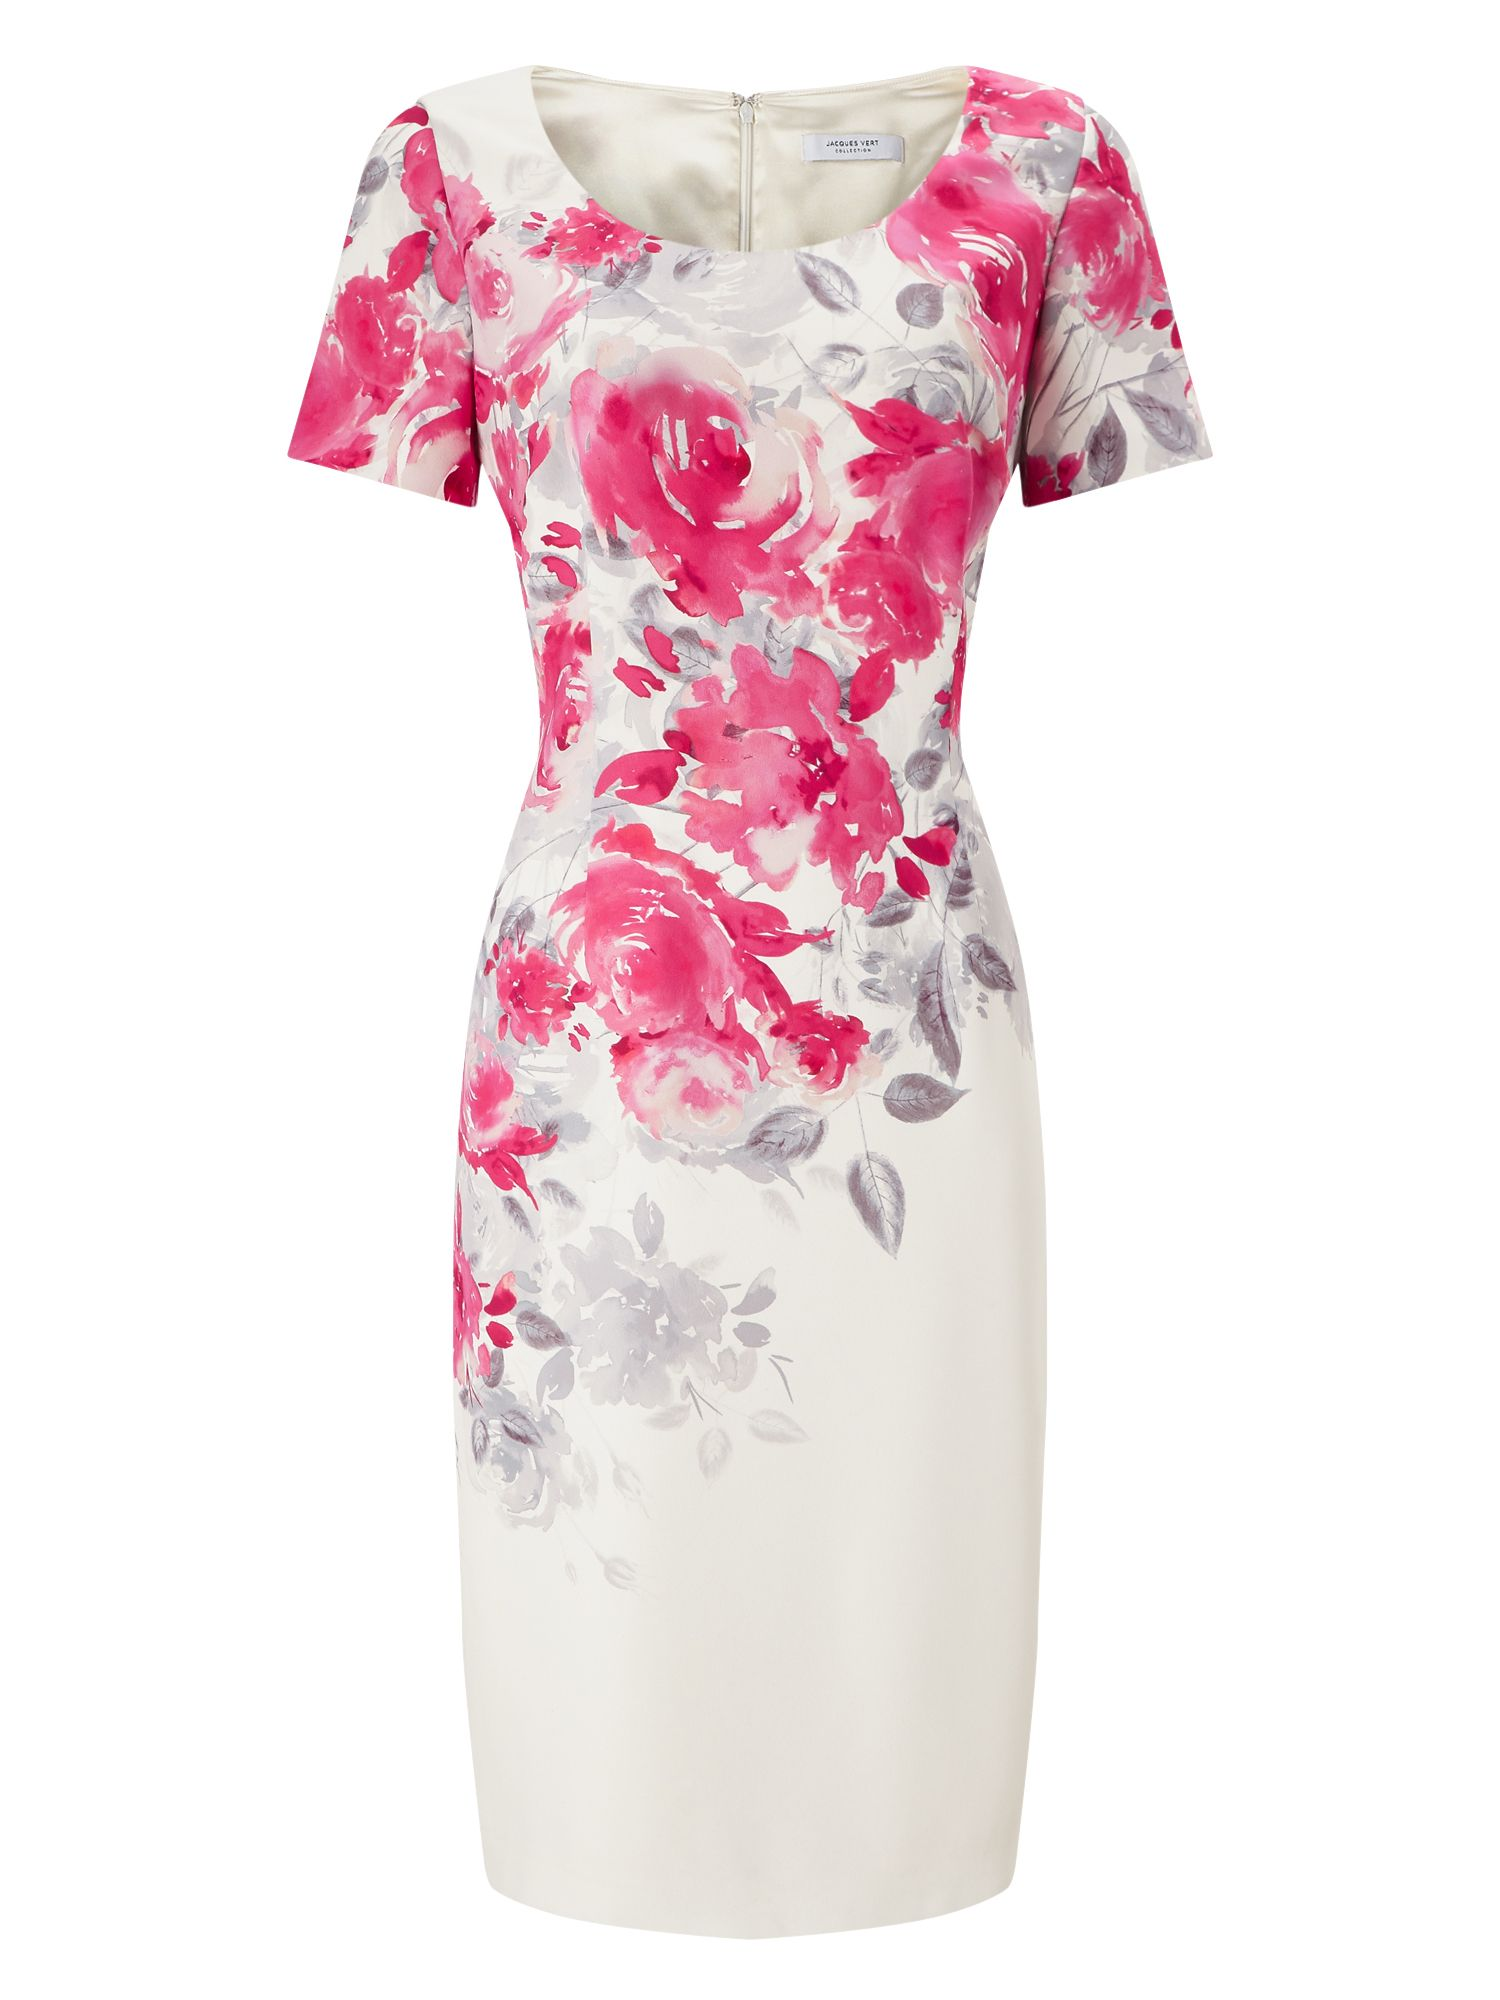 Jacques Vert Rose Print Shift Dress, Multi-Coloured